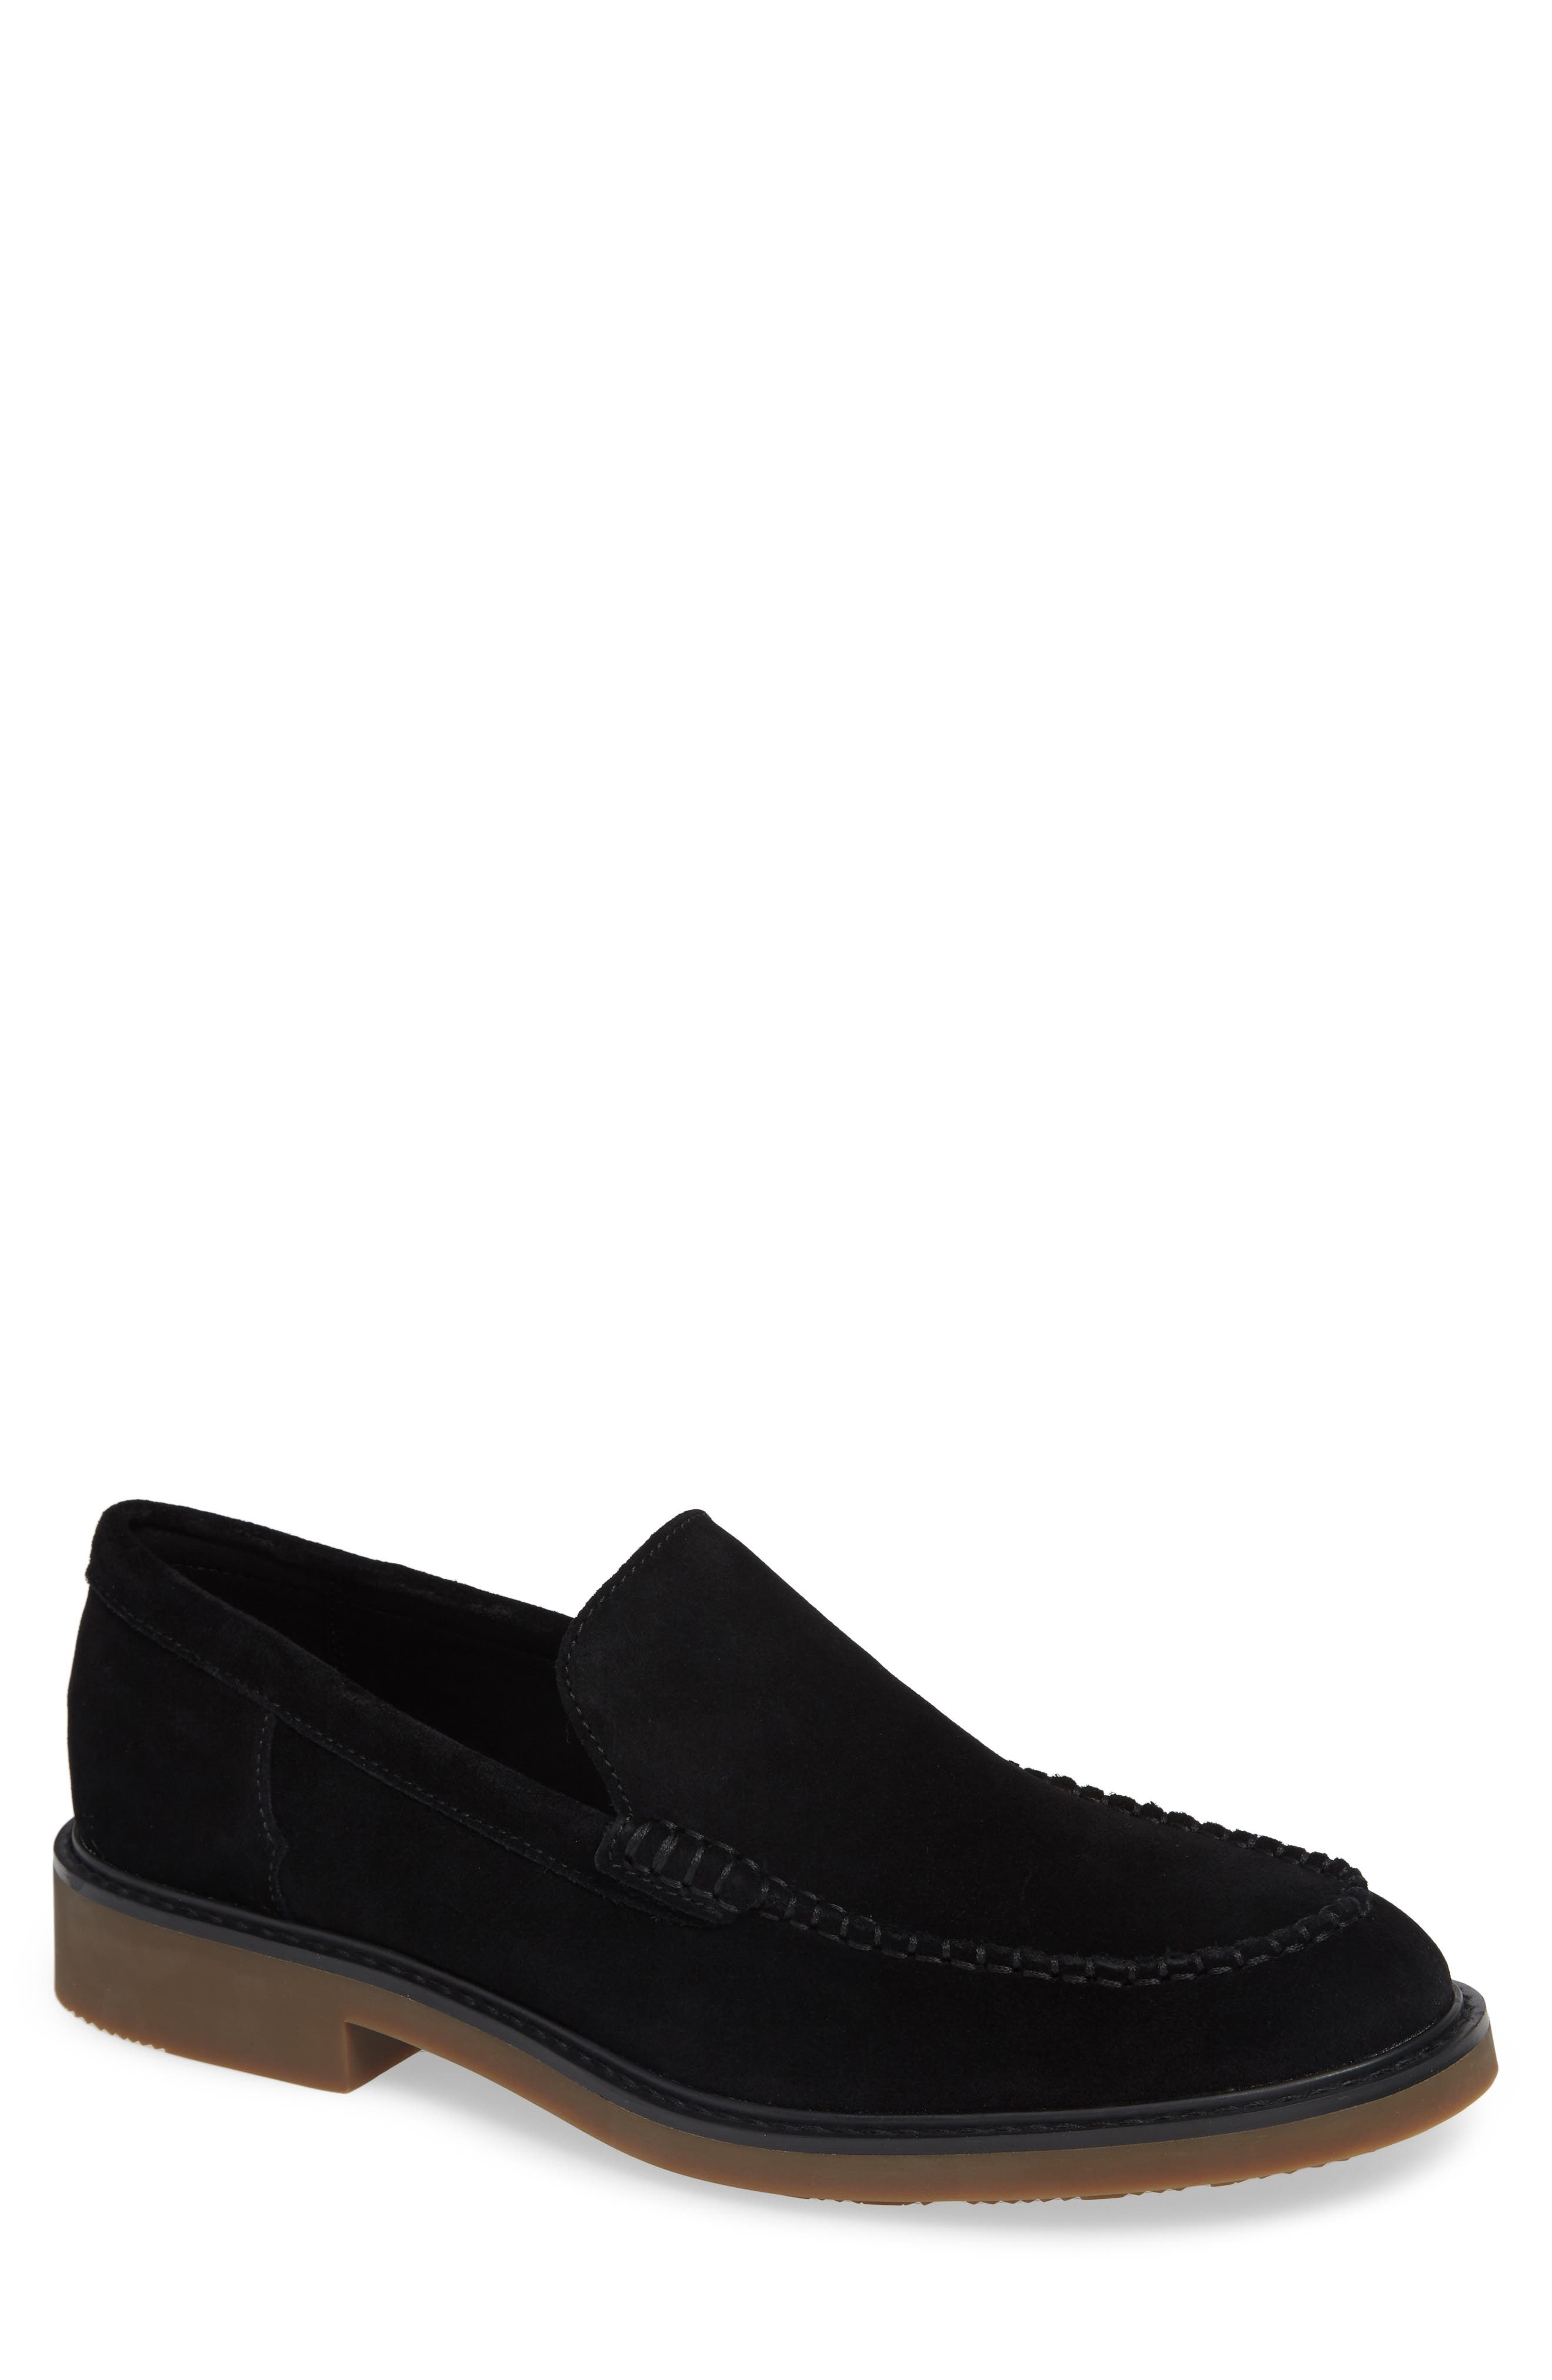 Vance Apron Toe Loafer,                         Main,                         color, BLACK CALF SUEDE